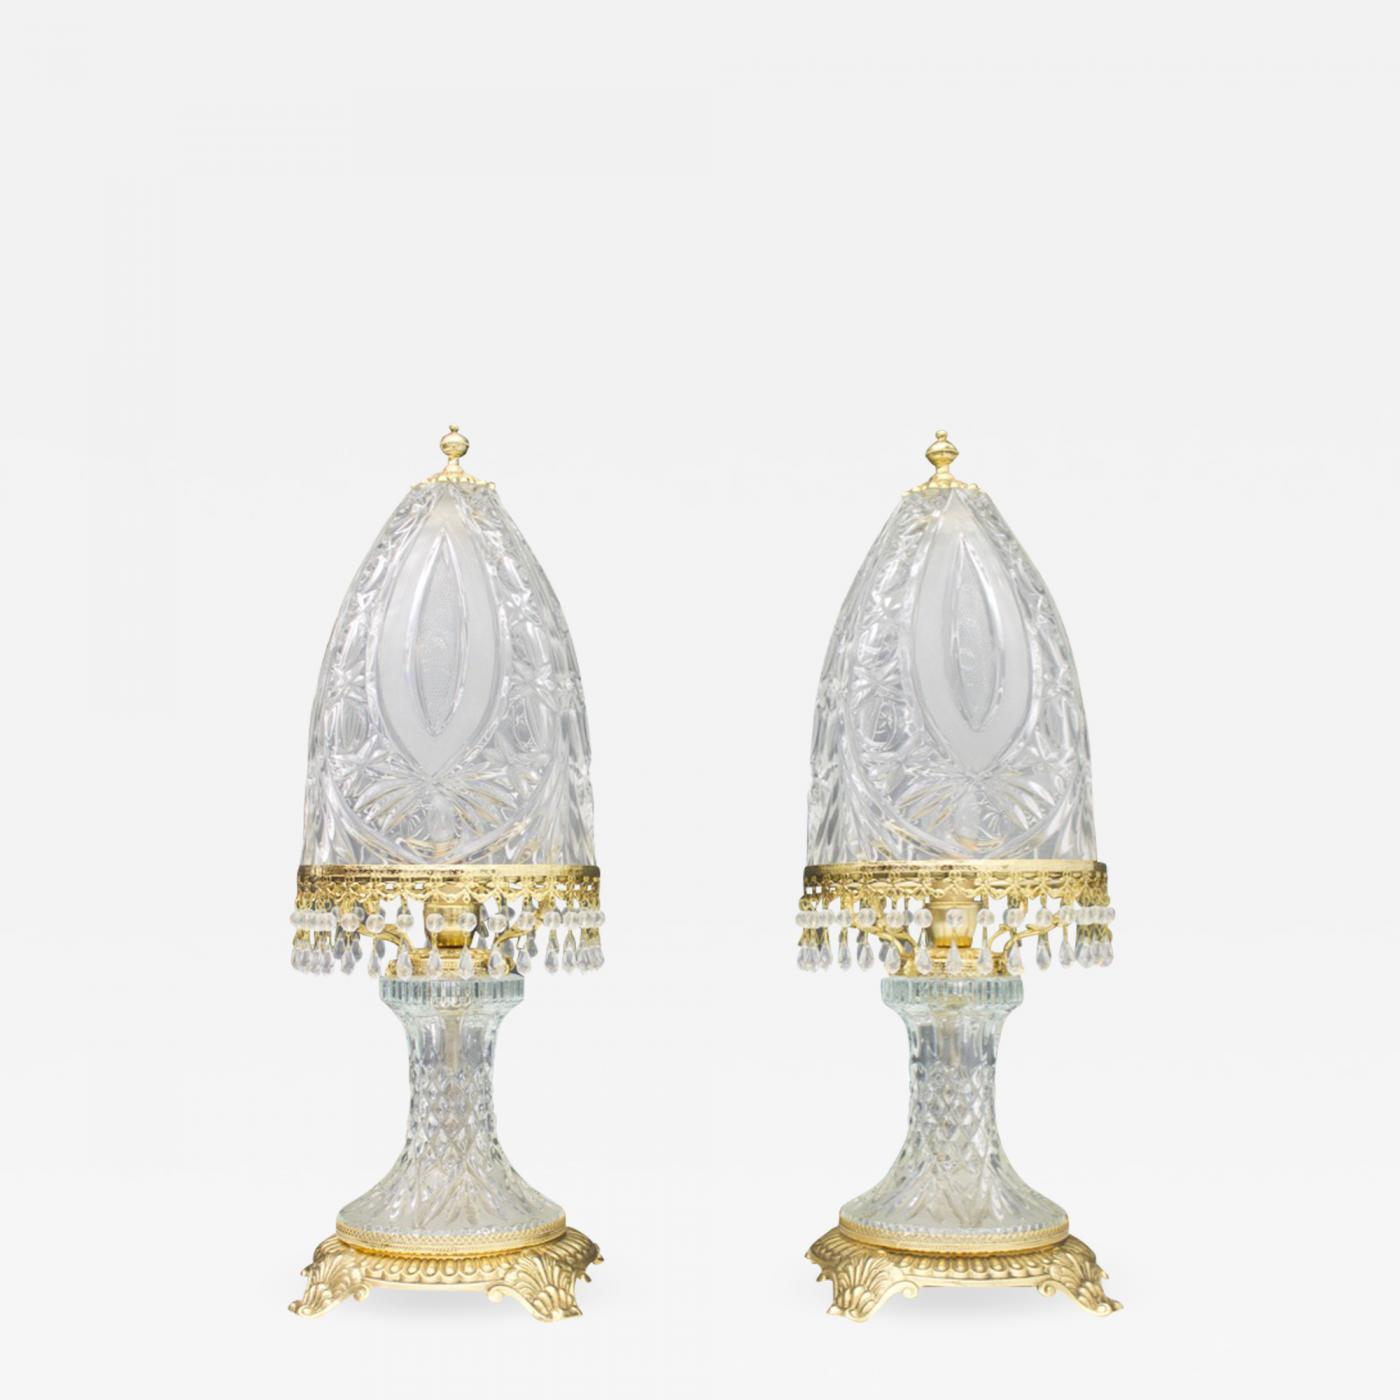 Baccarat Rare Pair Of Crystal Glass Table Lamps By Valery Klein For Baccarat France 1960s